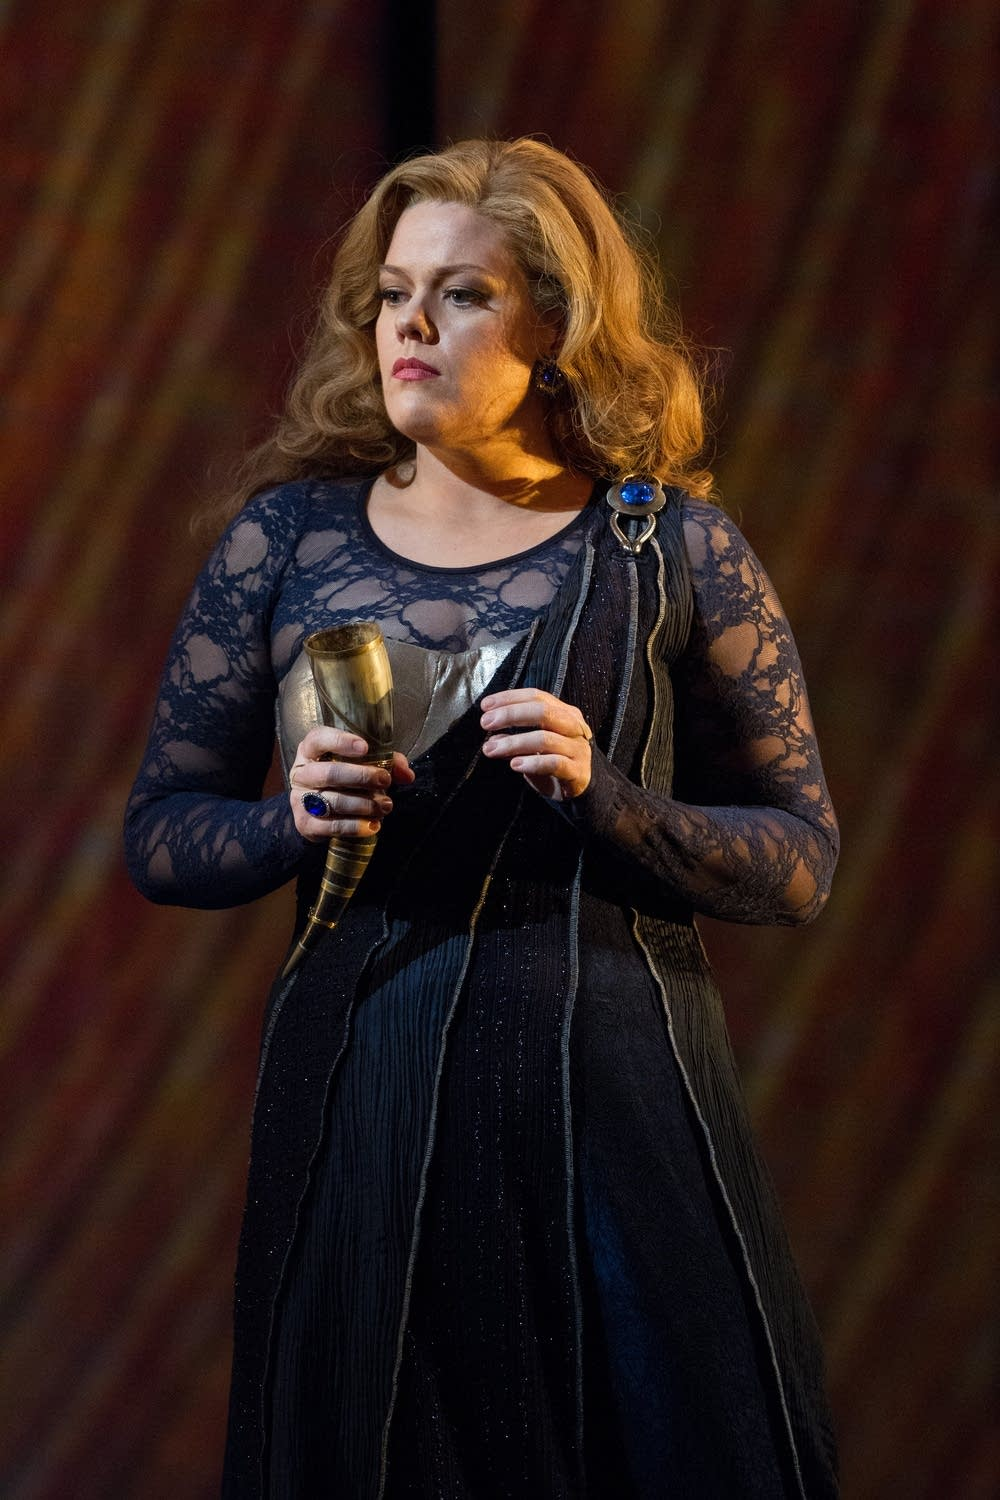 Wendy Bryn Harmer as Gutrune